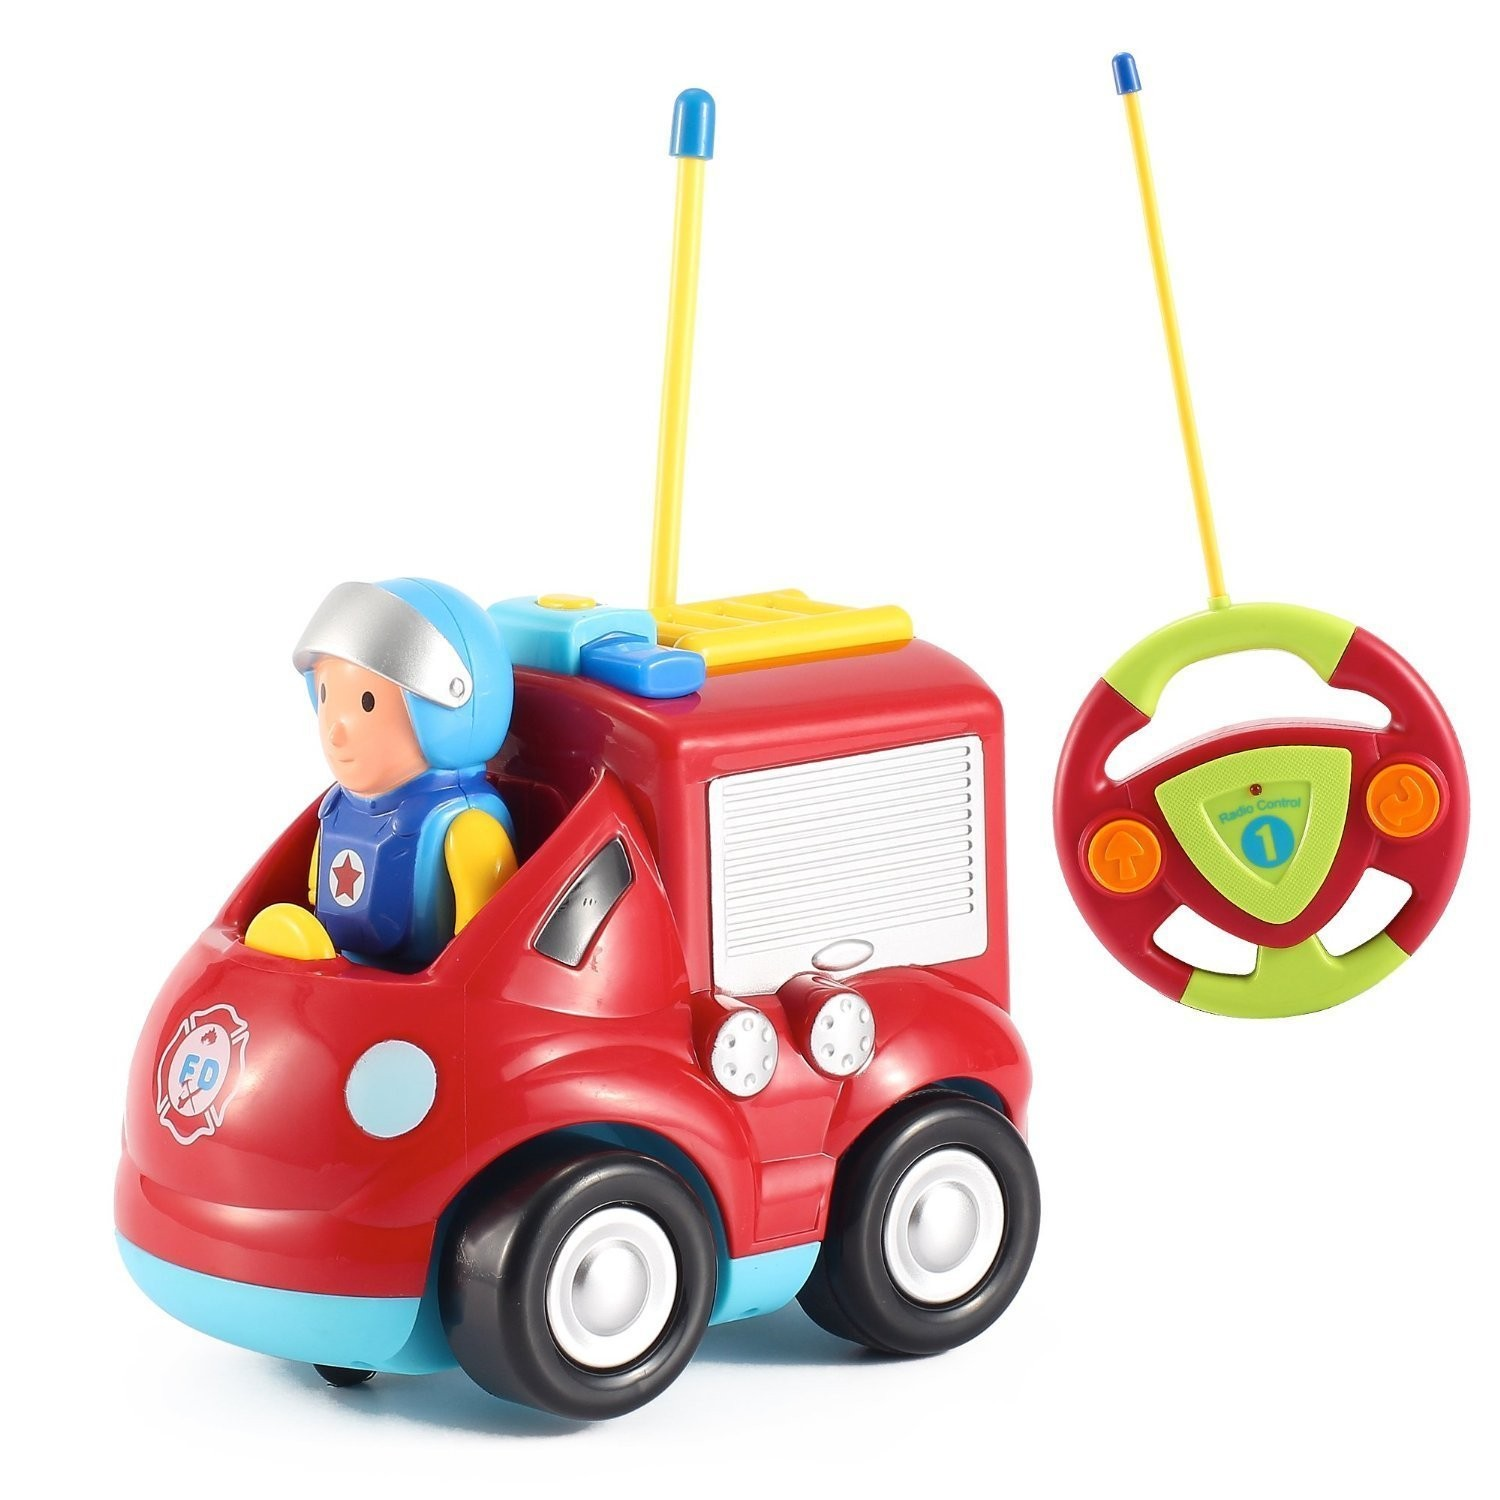 Cartoon R/C Fire Truck Car Radio Control Toy for Toddlers